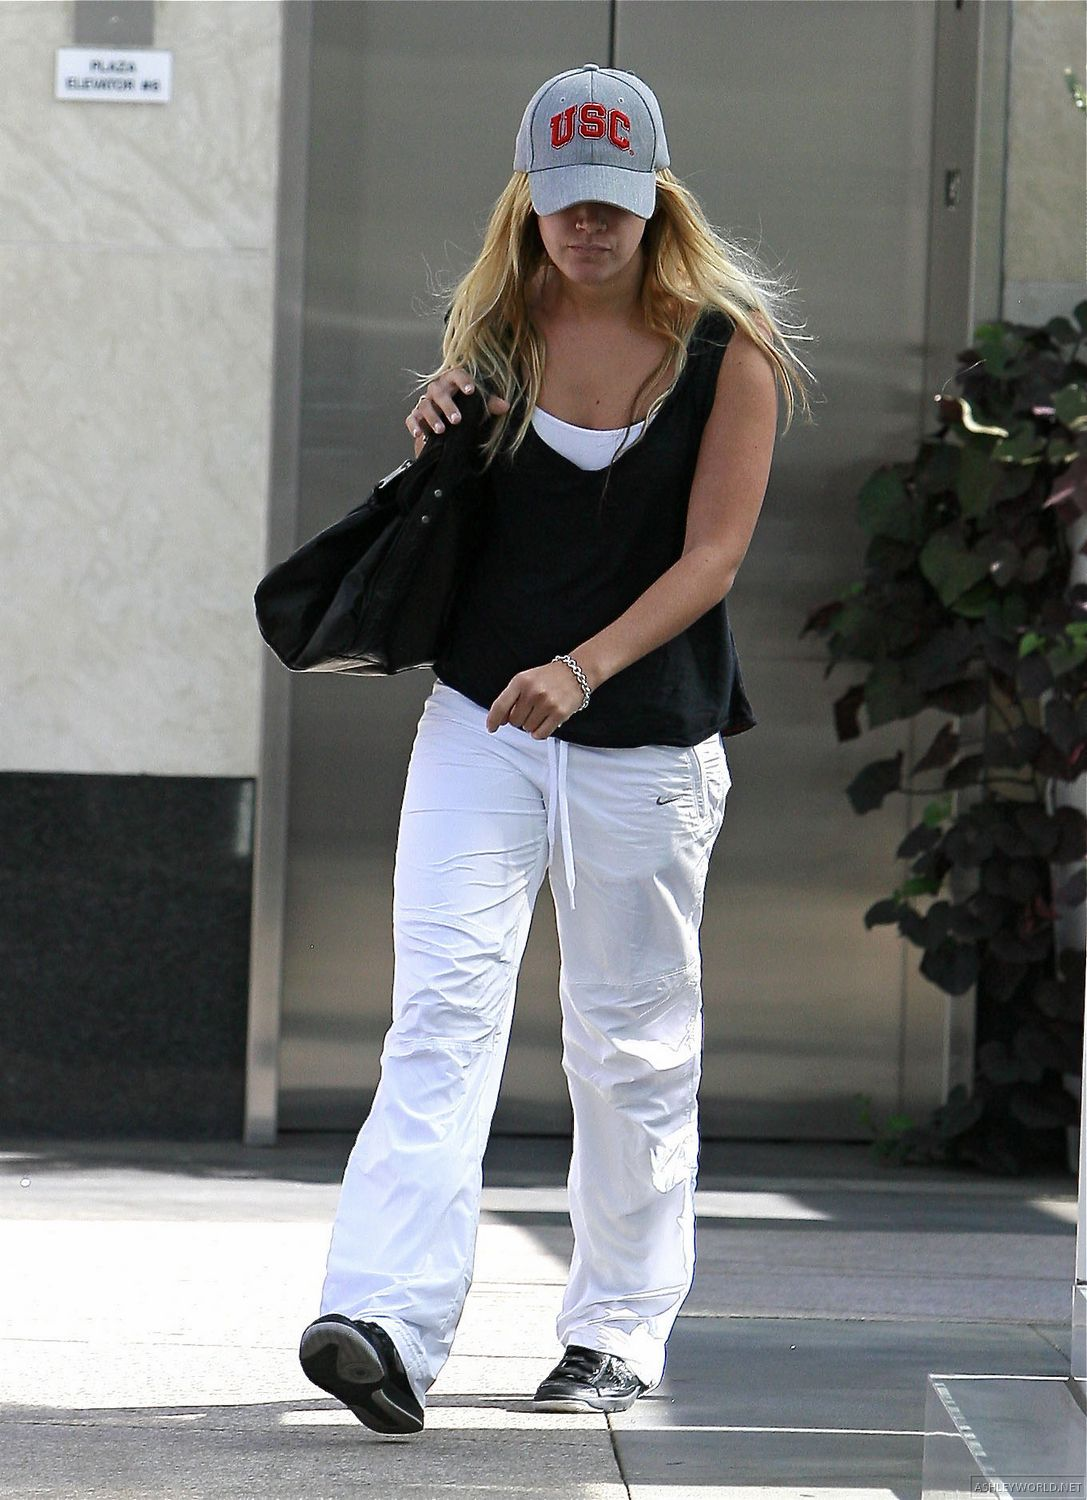 http://www.paquifansites.net/ashley/albums/Candids/2009/At%20Coffee%20Bean%20and%20Tea%20Leaf%20in%20West%20Hollywood%20October%2026/4.jpg